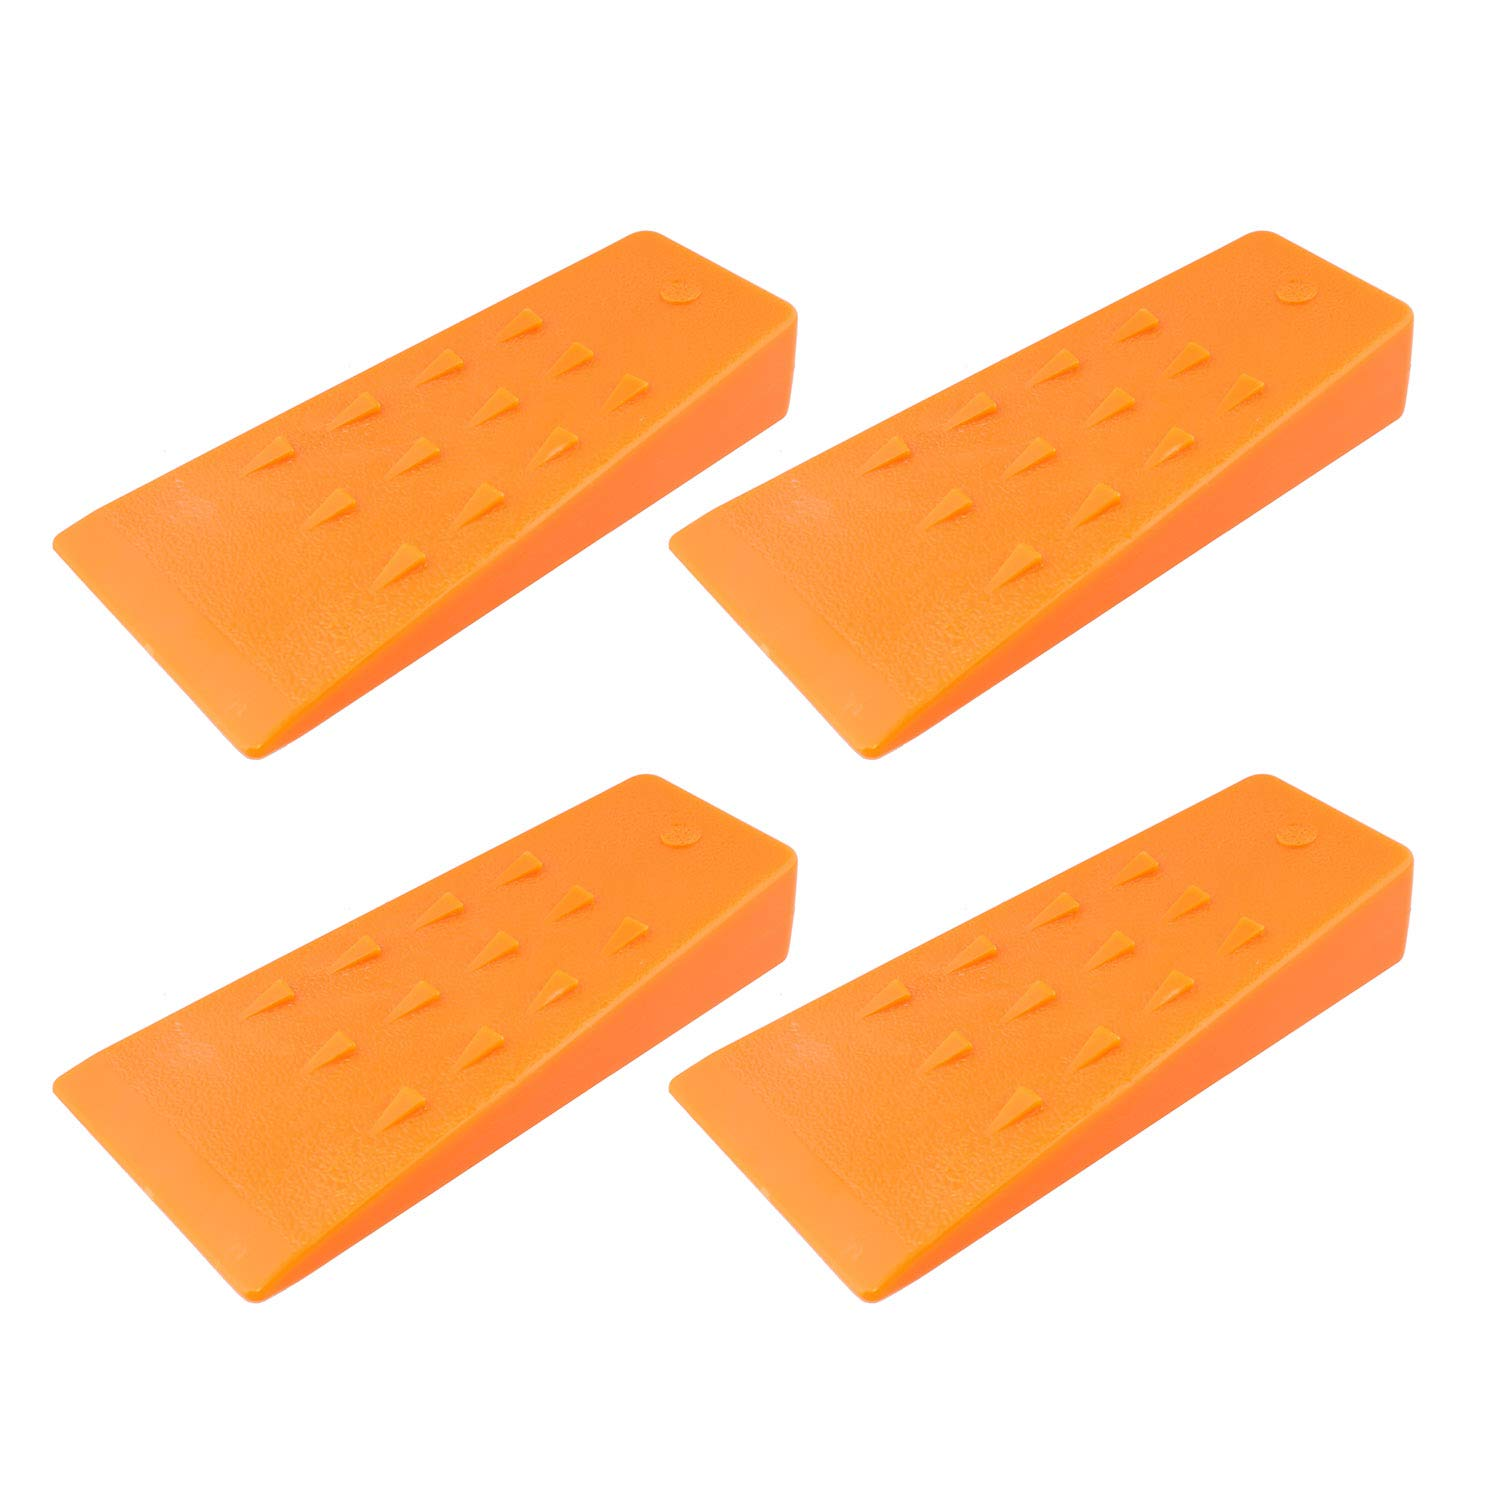 Felled Spiked Tree Felling Wedges for Tree Cutting - 5.5'' Inch Orange Plastic Felling Wedge, Logging Tools - 4 Pack by Felled